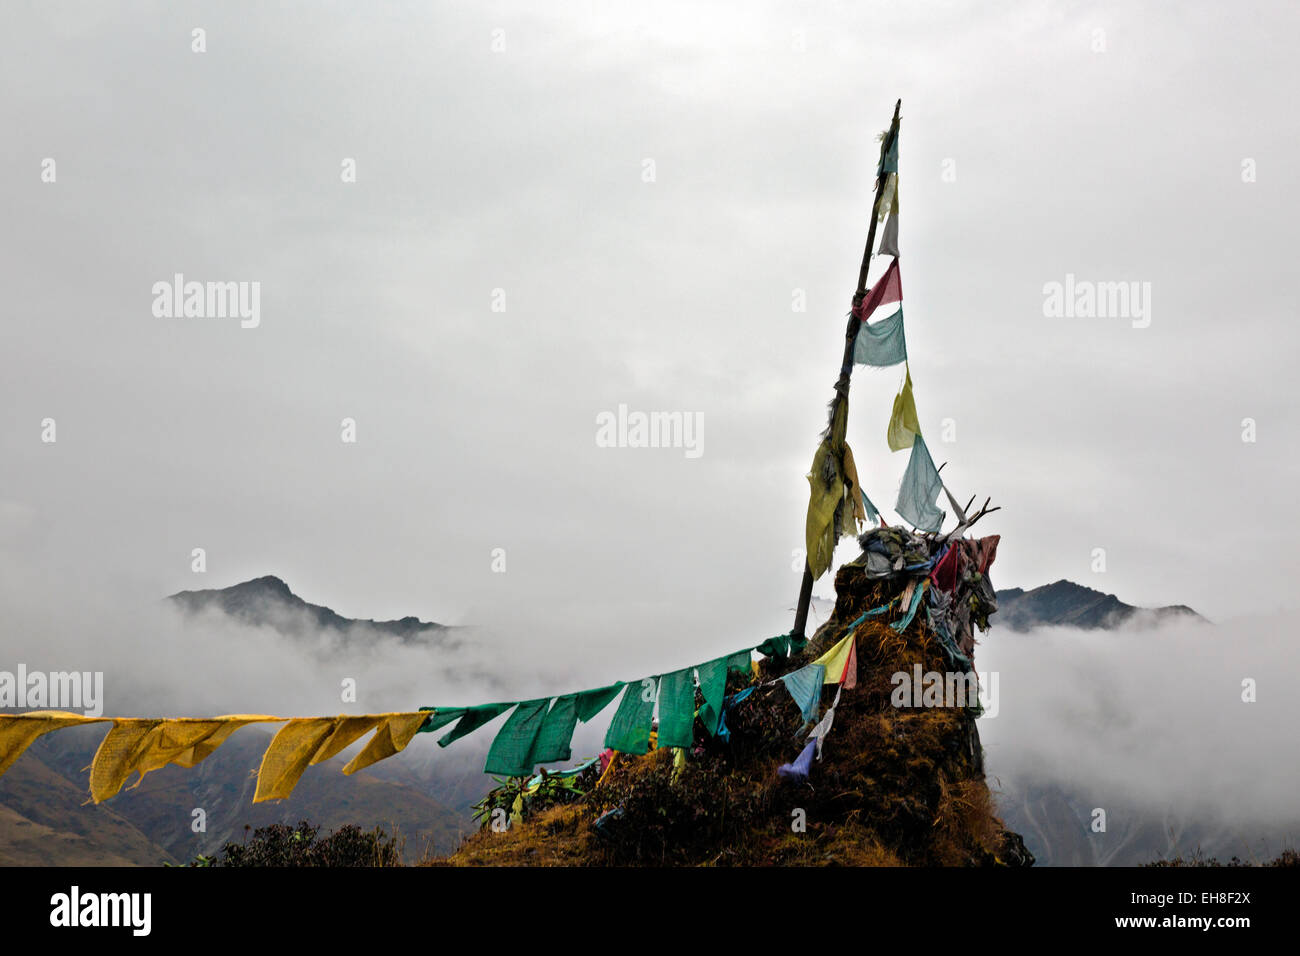 BU00281-00...BHUTAN - Thumbu La, the 14,370-foot summit of the last climb on the Jhomolhari 2 Trek. - Stock Image